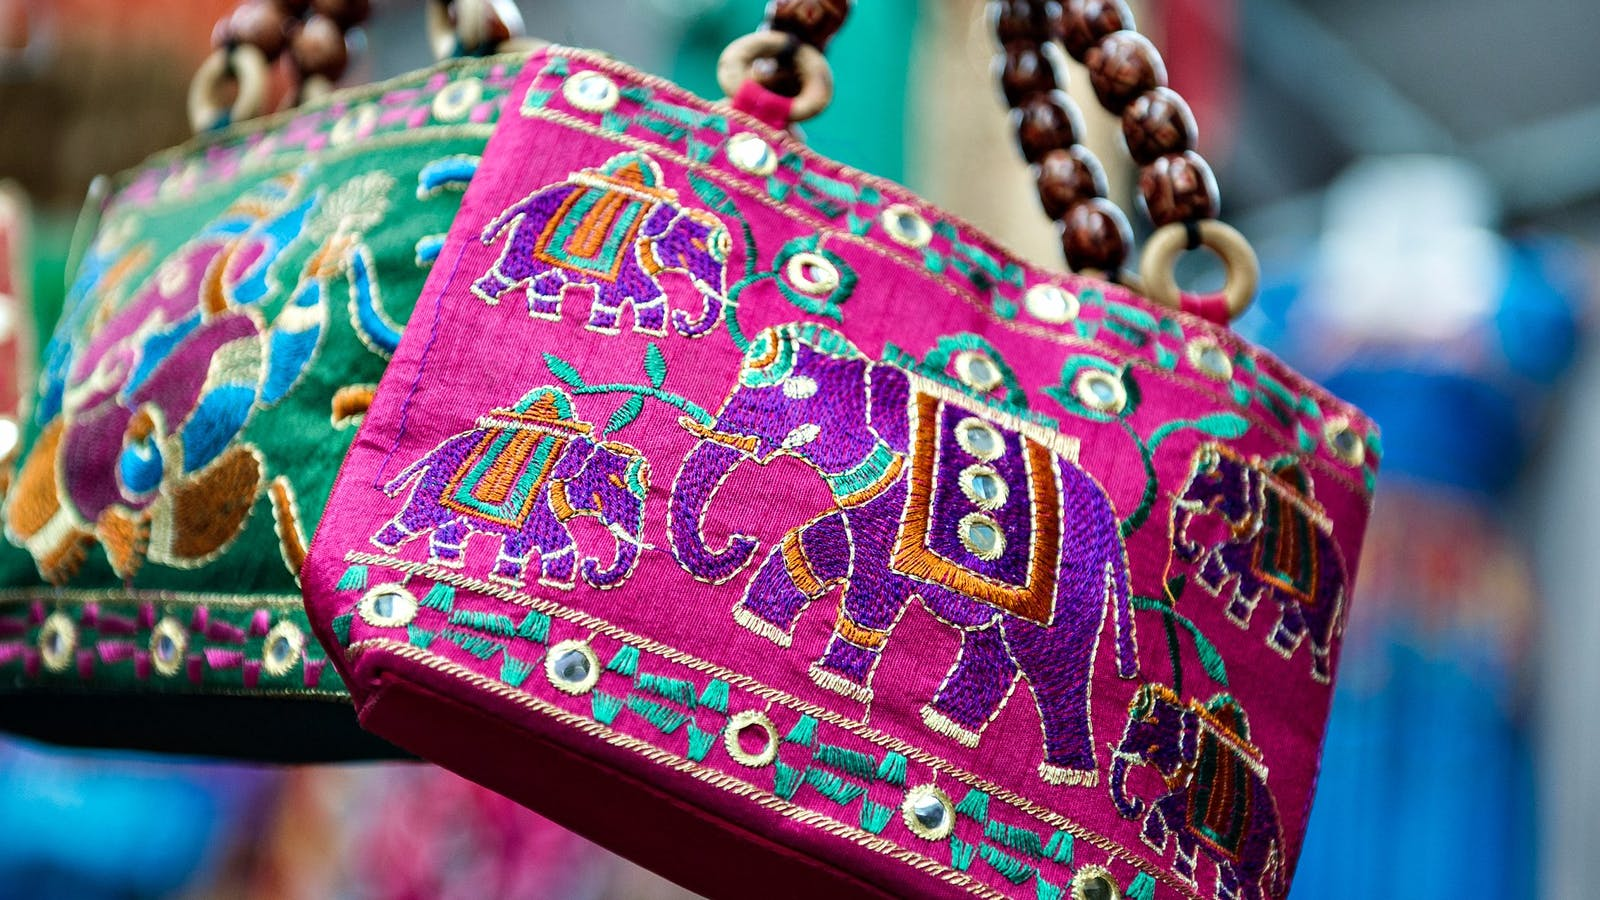 Hand-stitched bag from the Bazaar at Dandenong Market